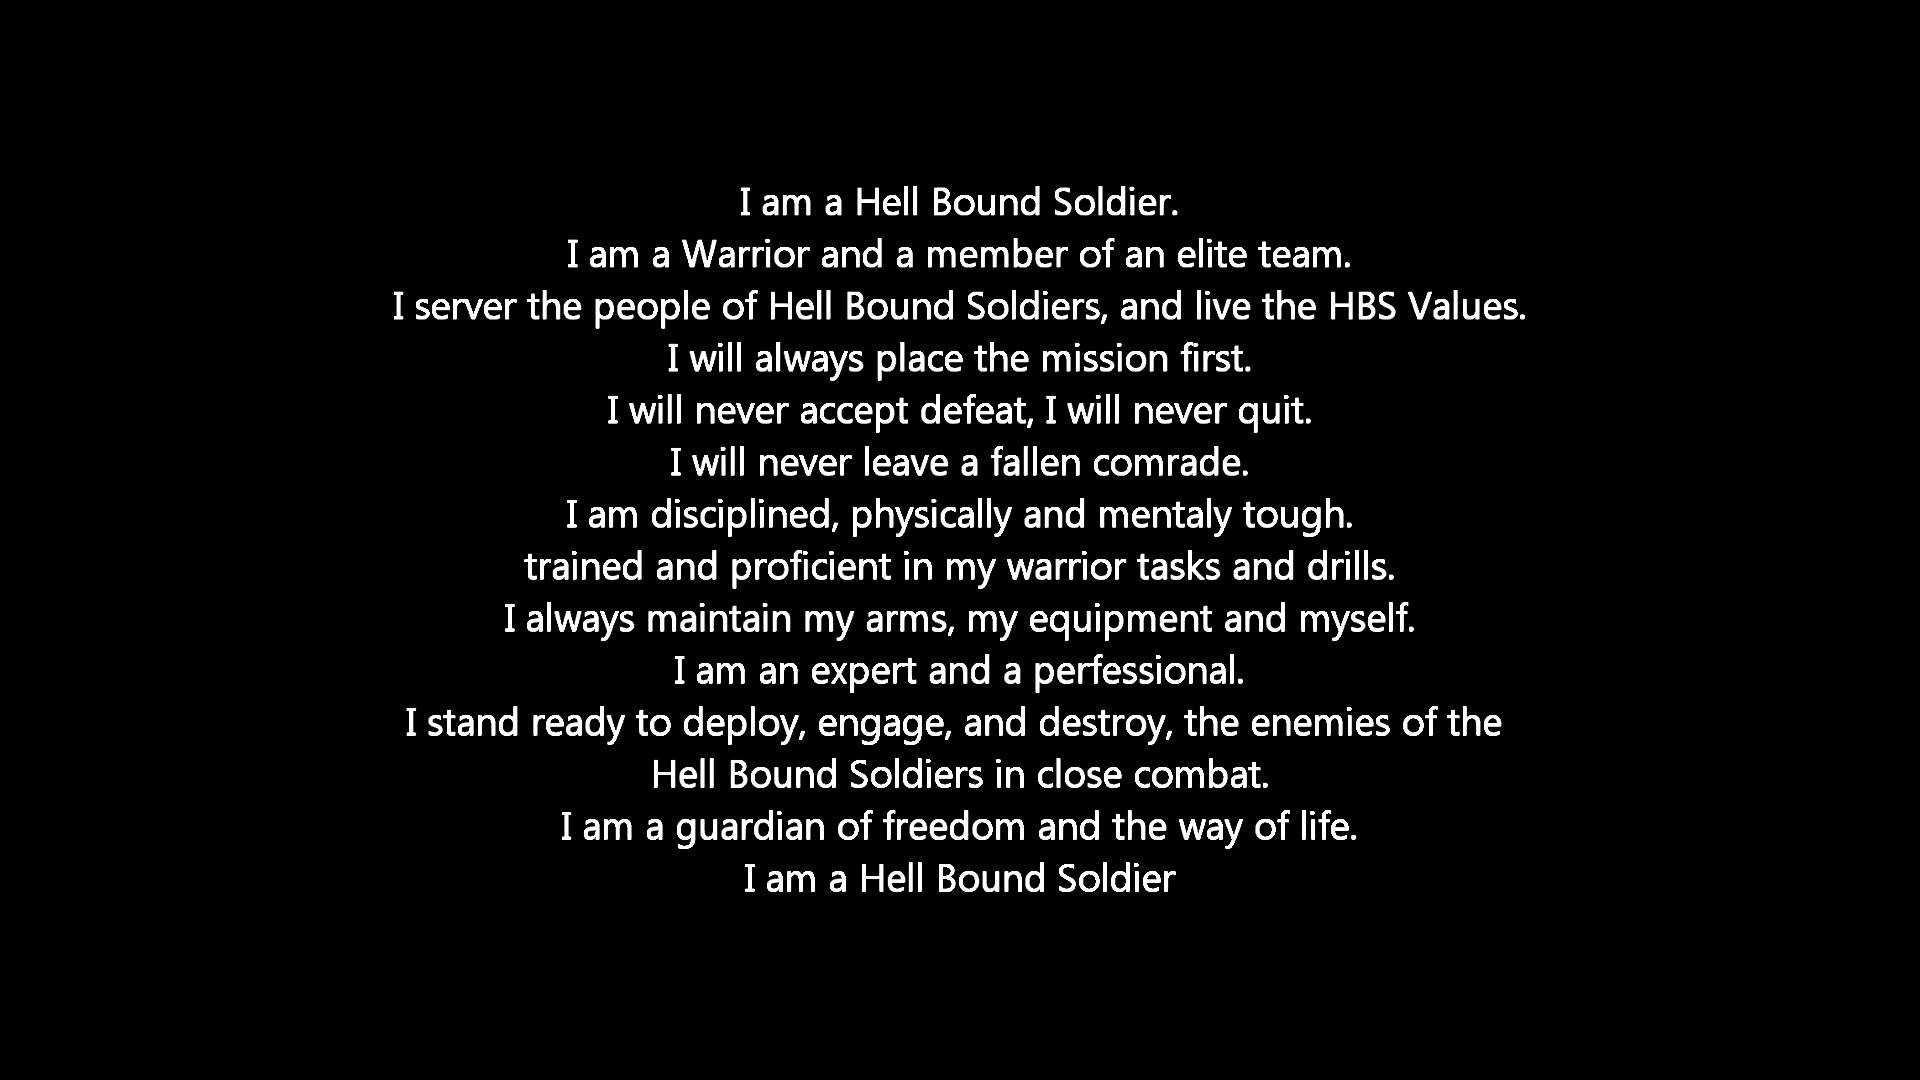 Hell Bound Soldiers Creed – YouTube